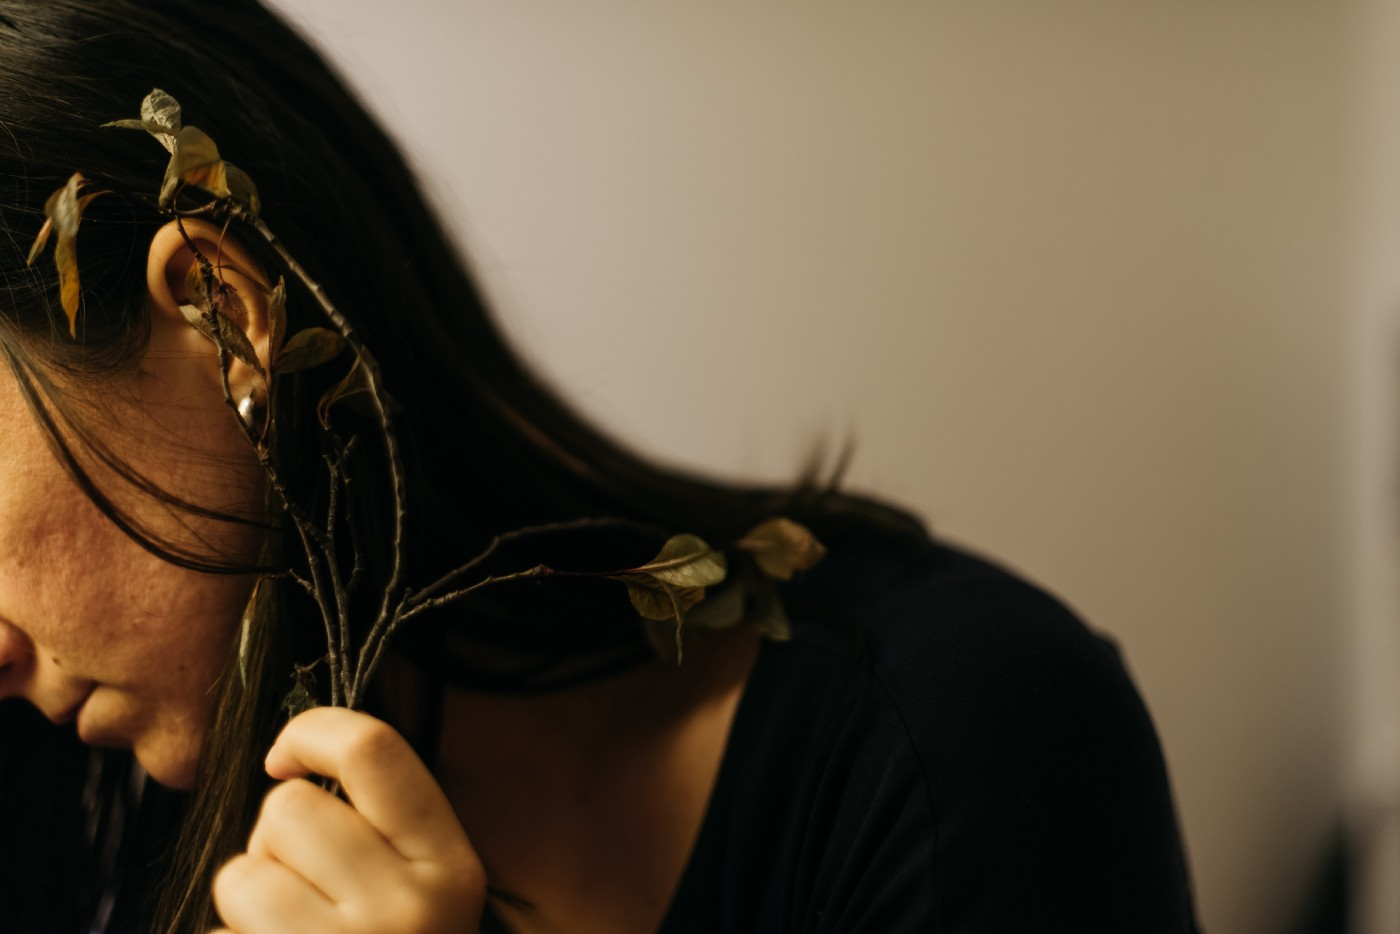 Self-portrait of a girl with flower branches in her hands close to one of herear—Still life photographer Bozen, Italy